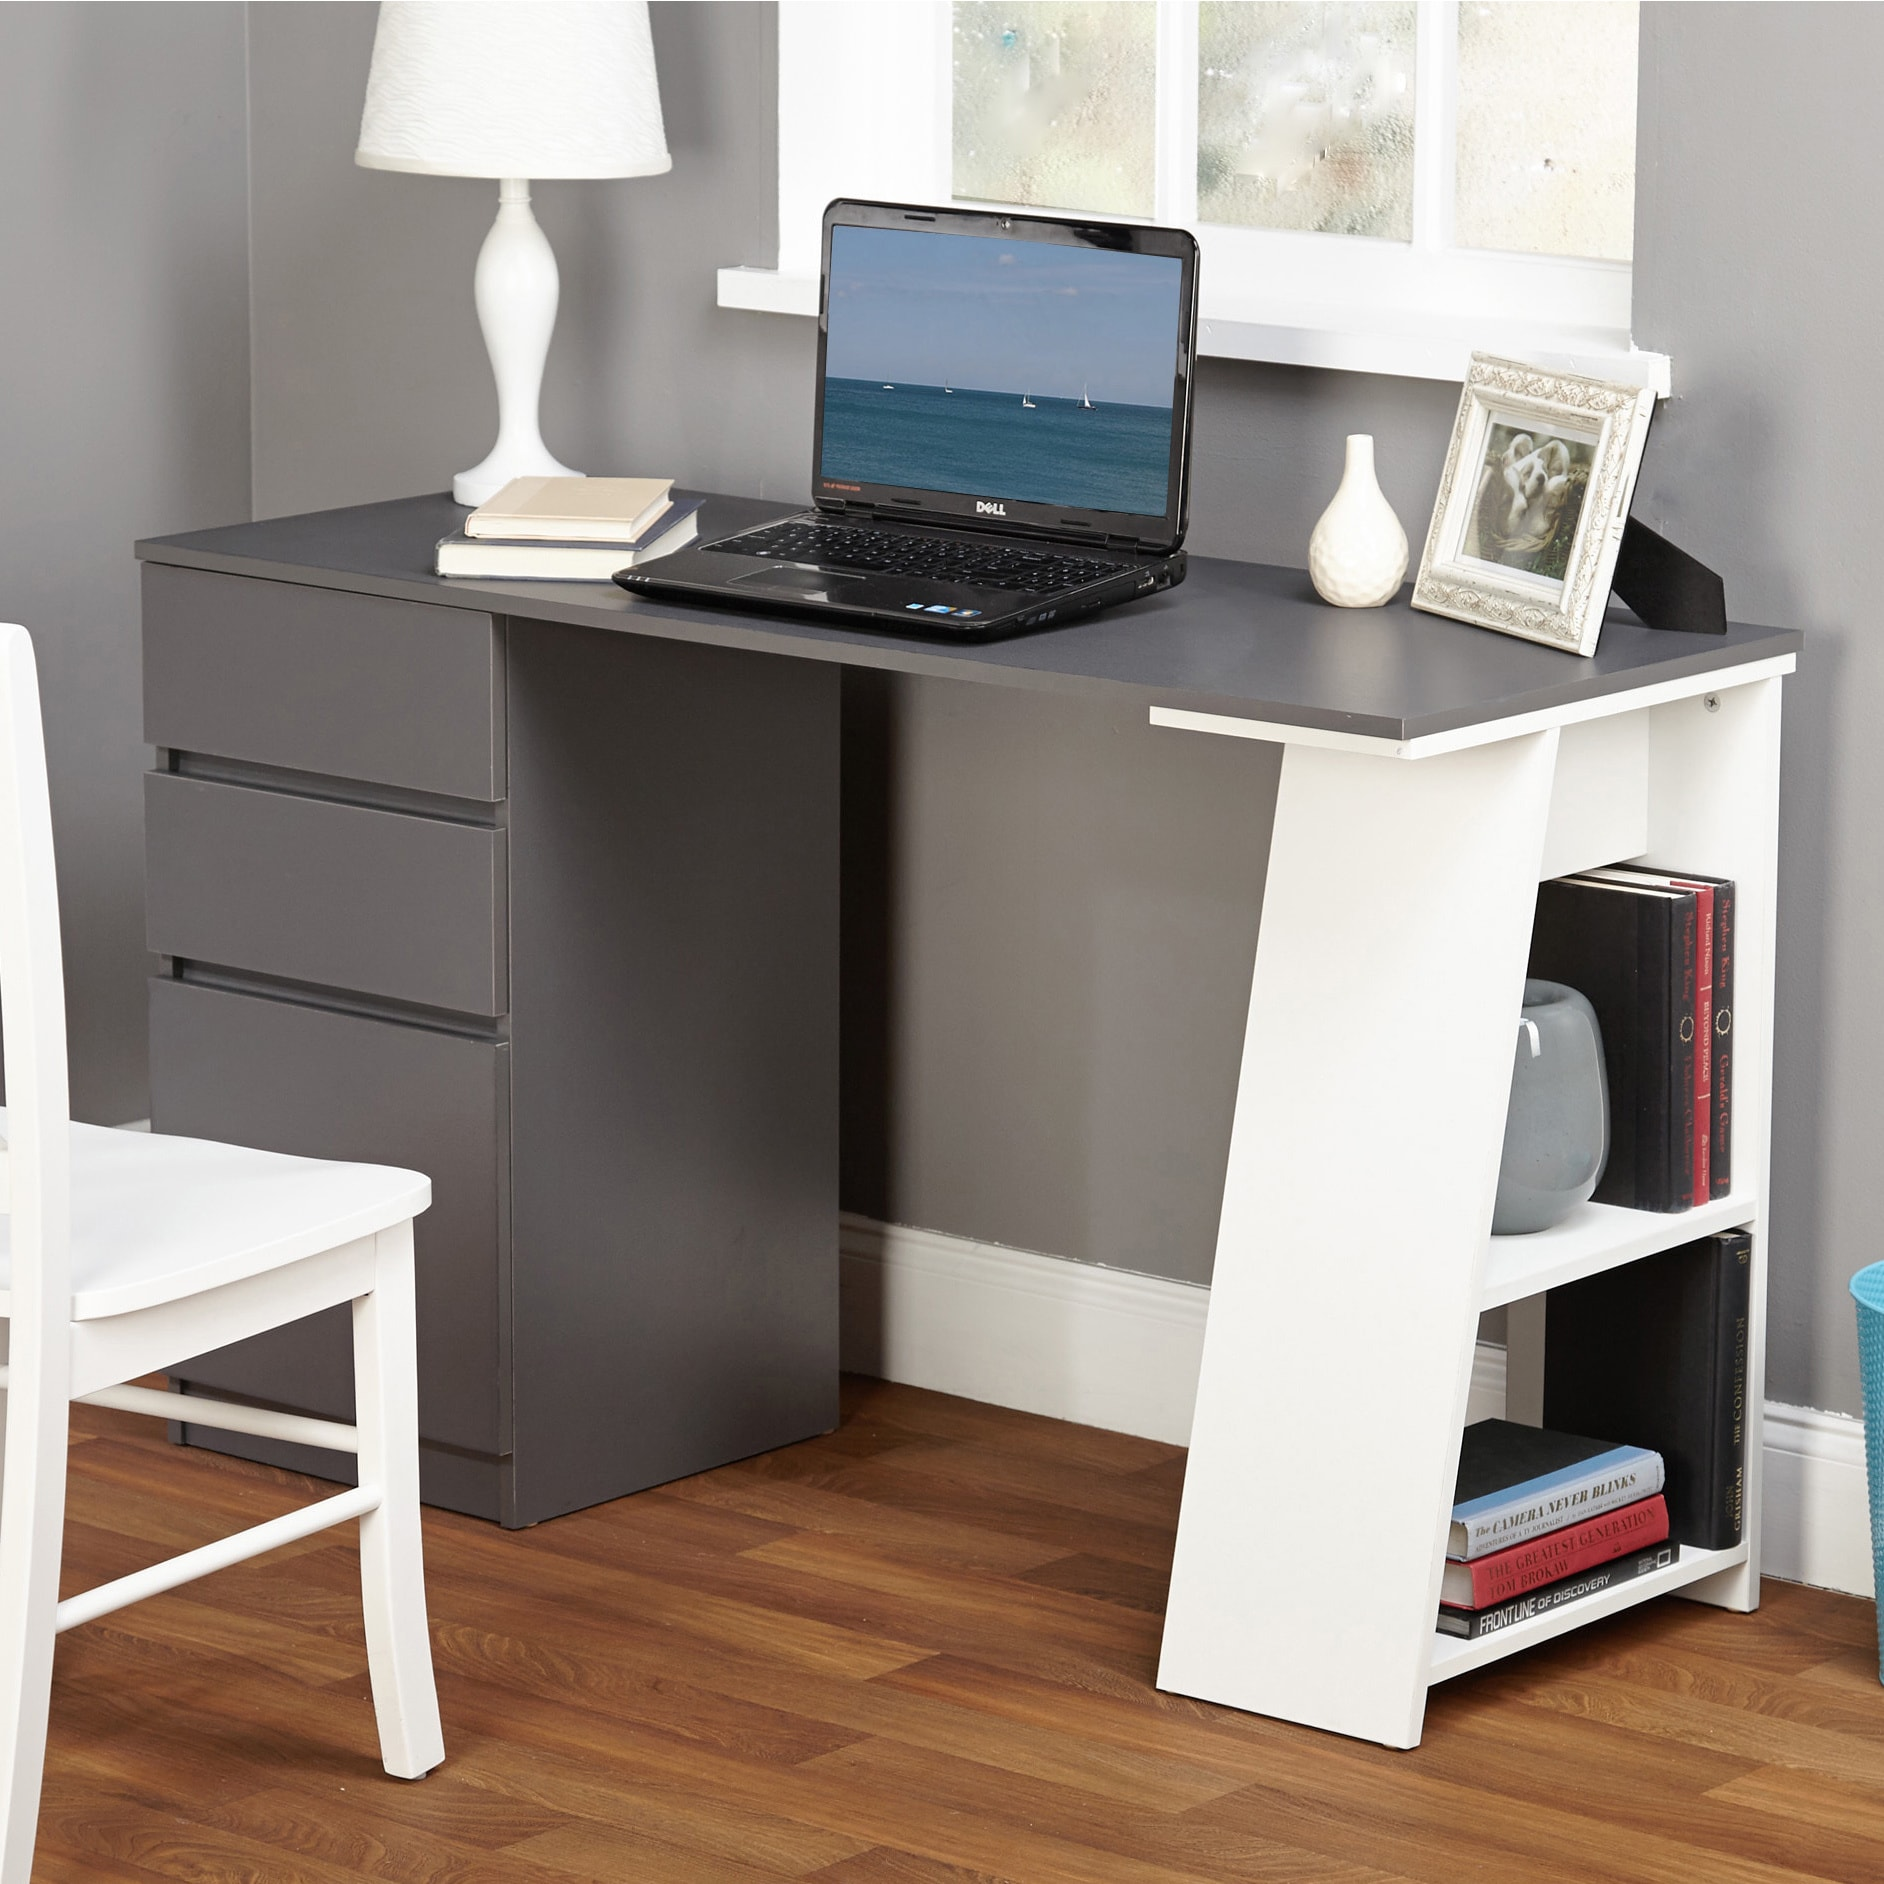 Matching Office Desk Accessories Buy Desks Computer Tables Online At Overstock Our Best Home